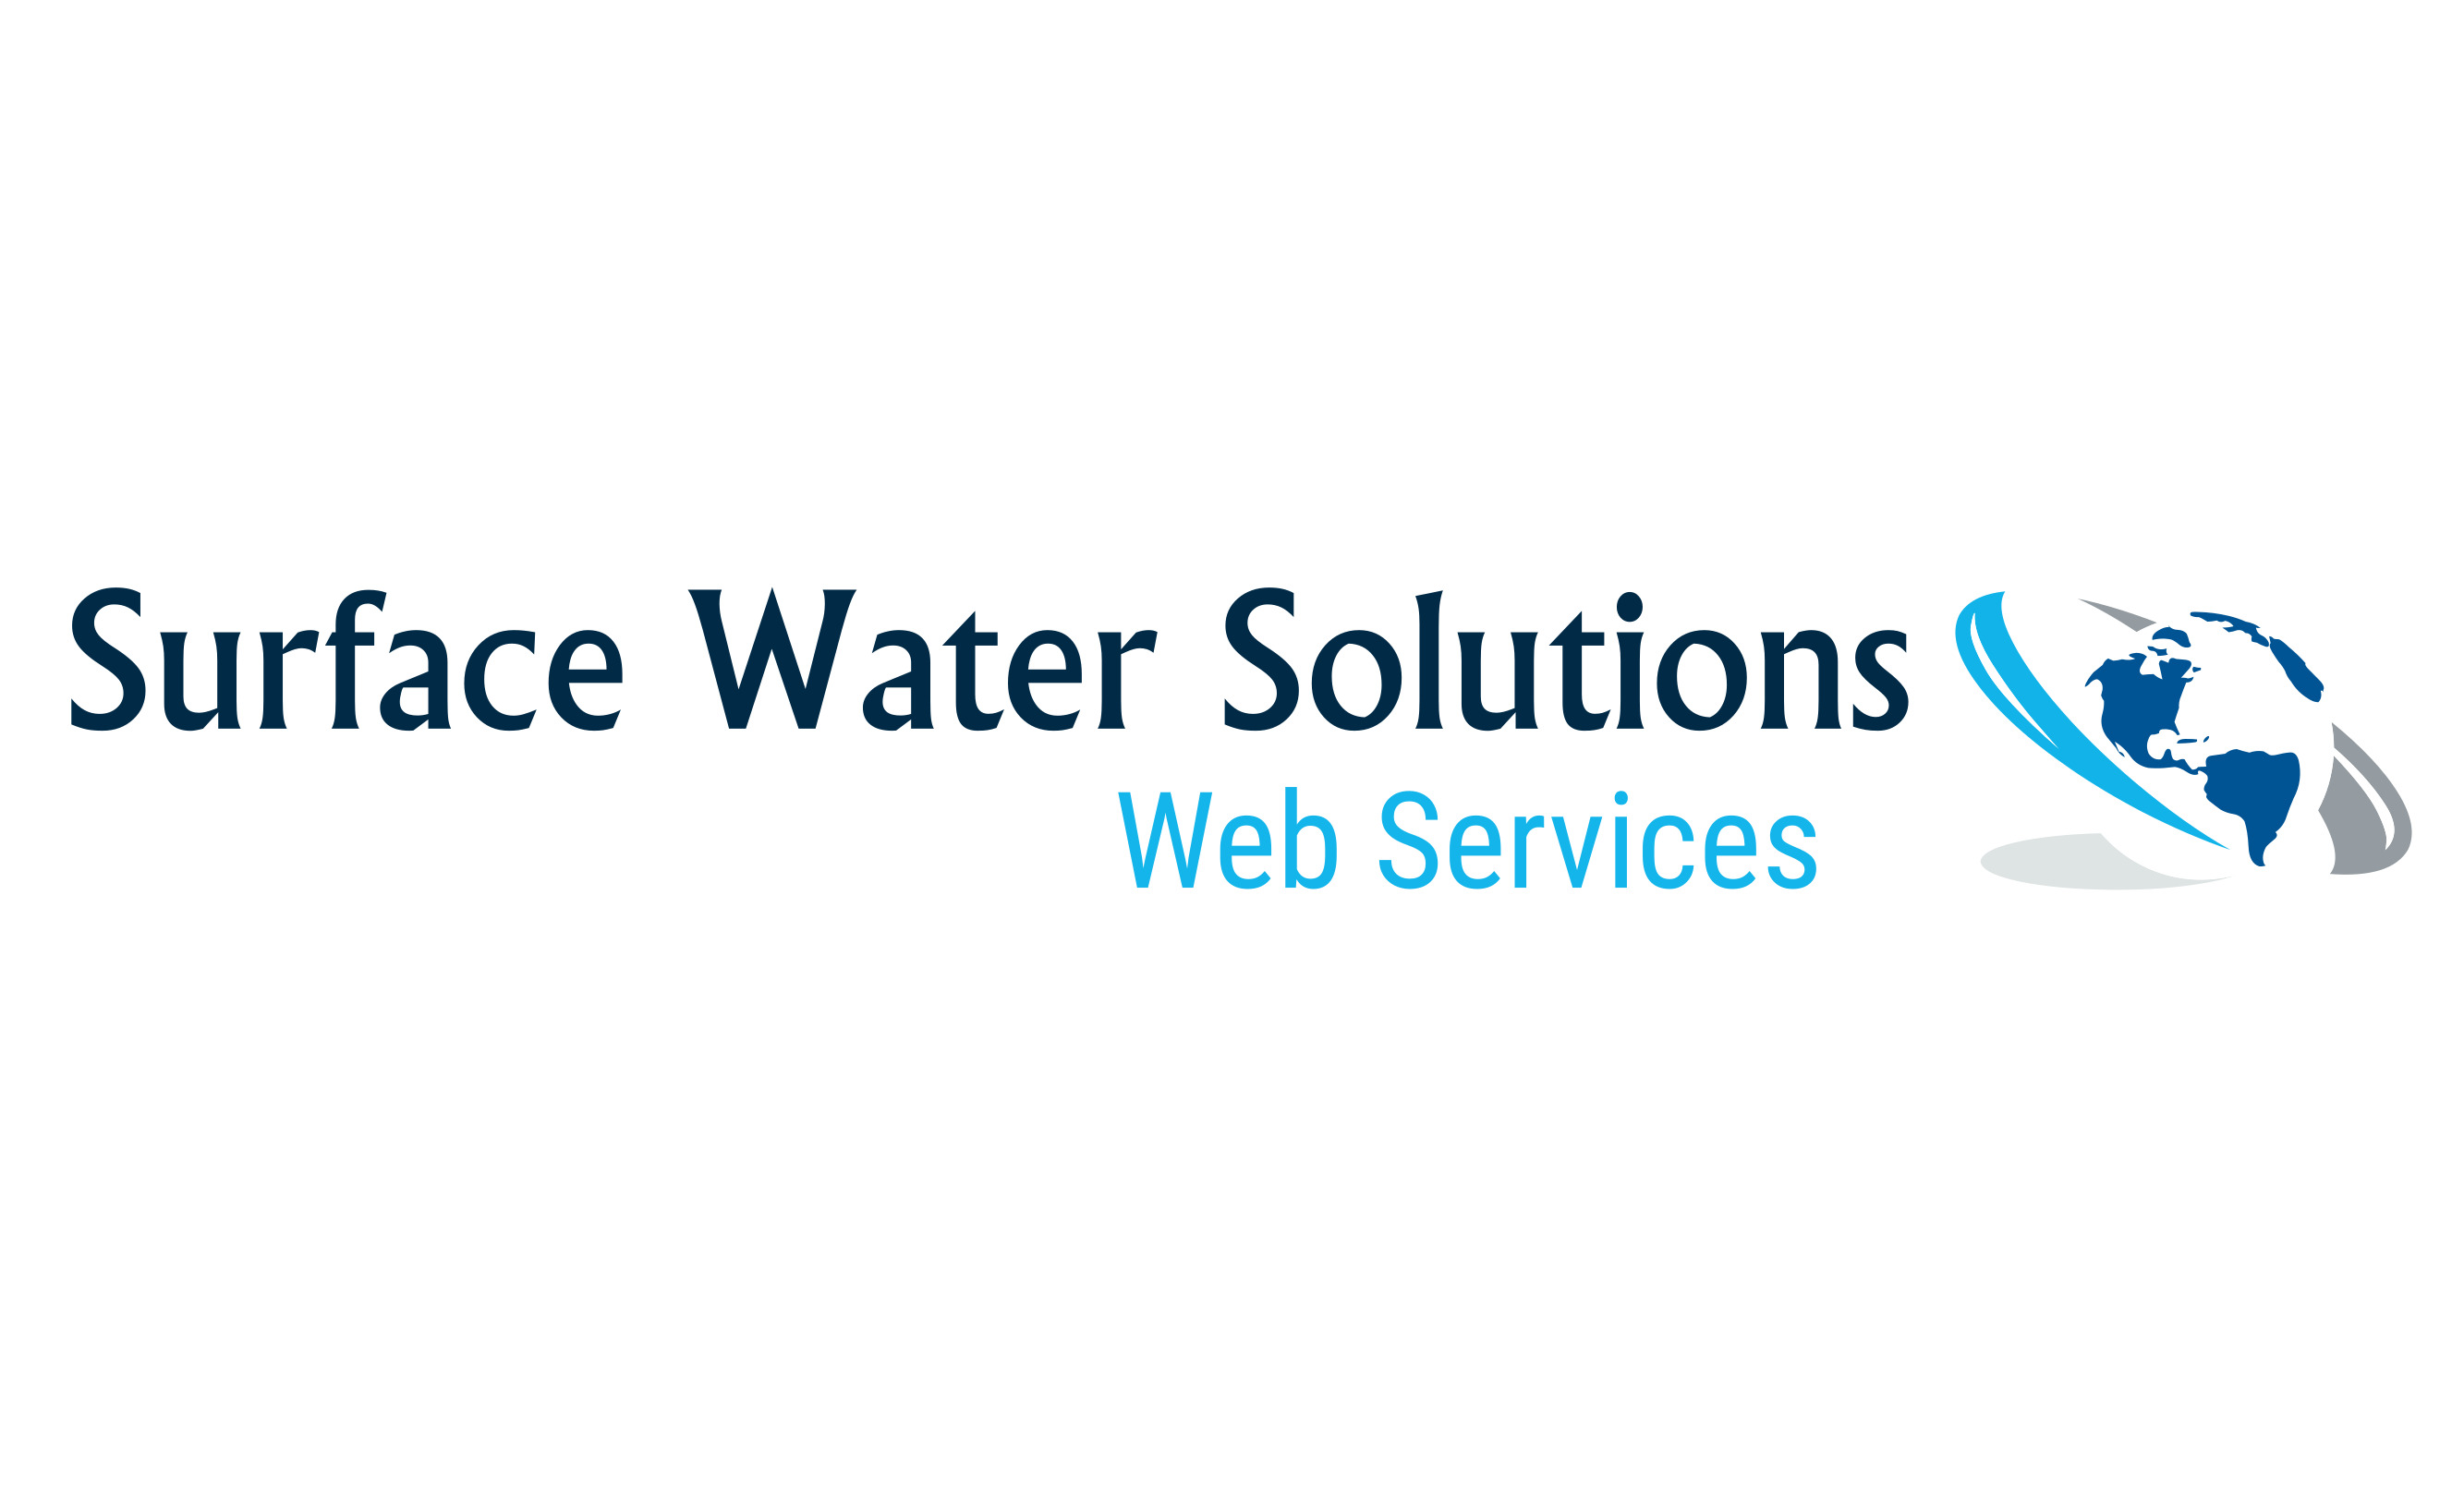 Surface Water Solutions Web Services